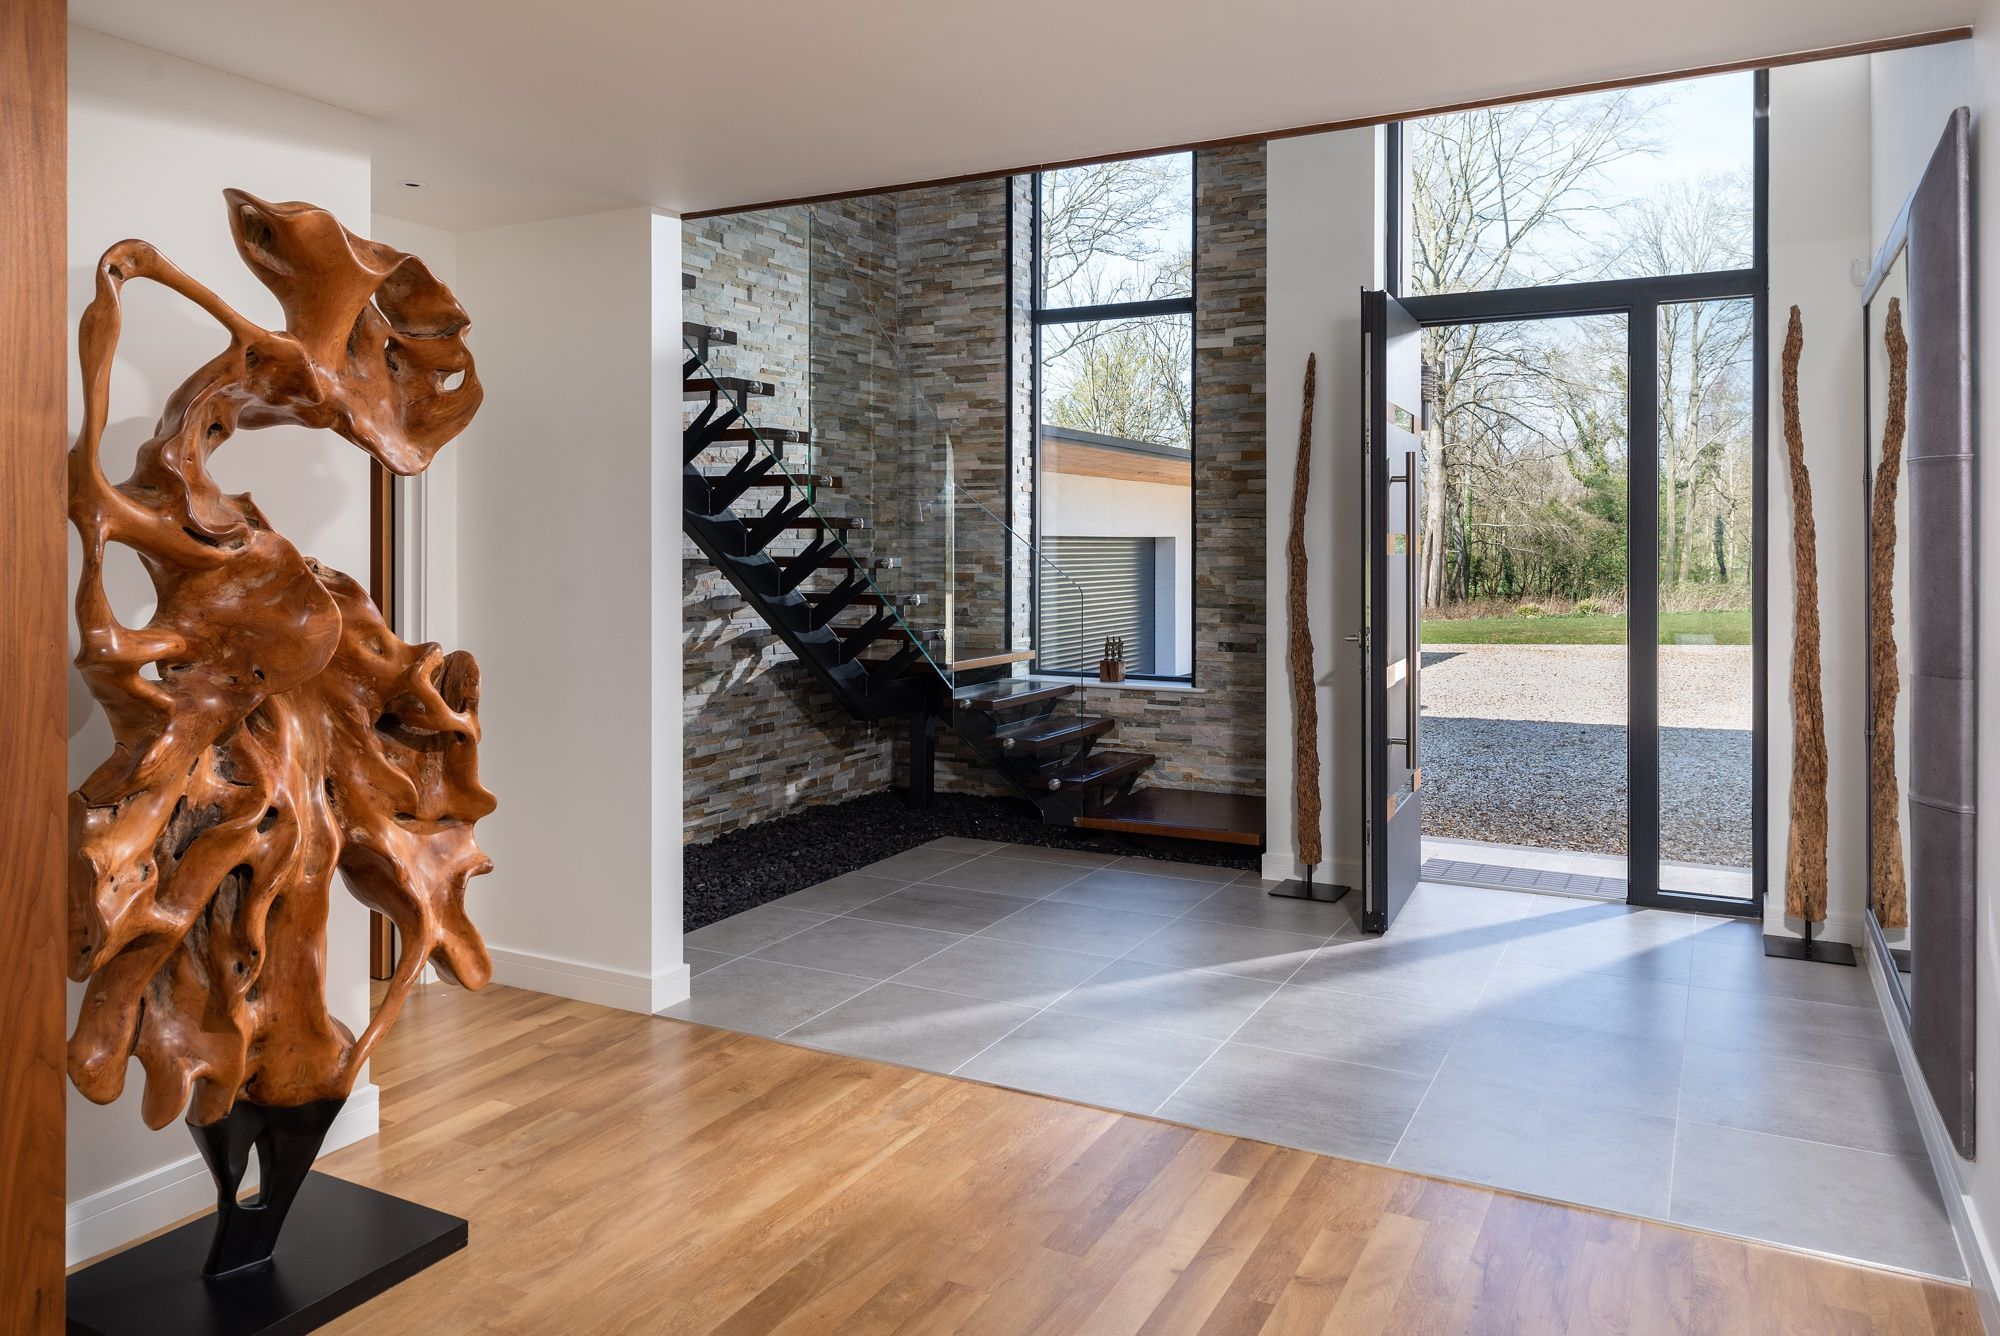 see a cutting edge eco friendly home in hampshire